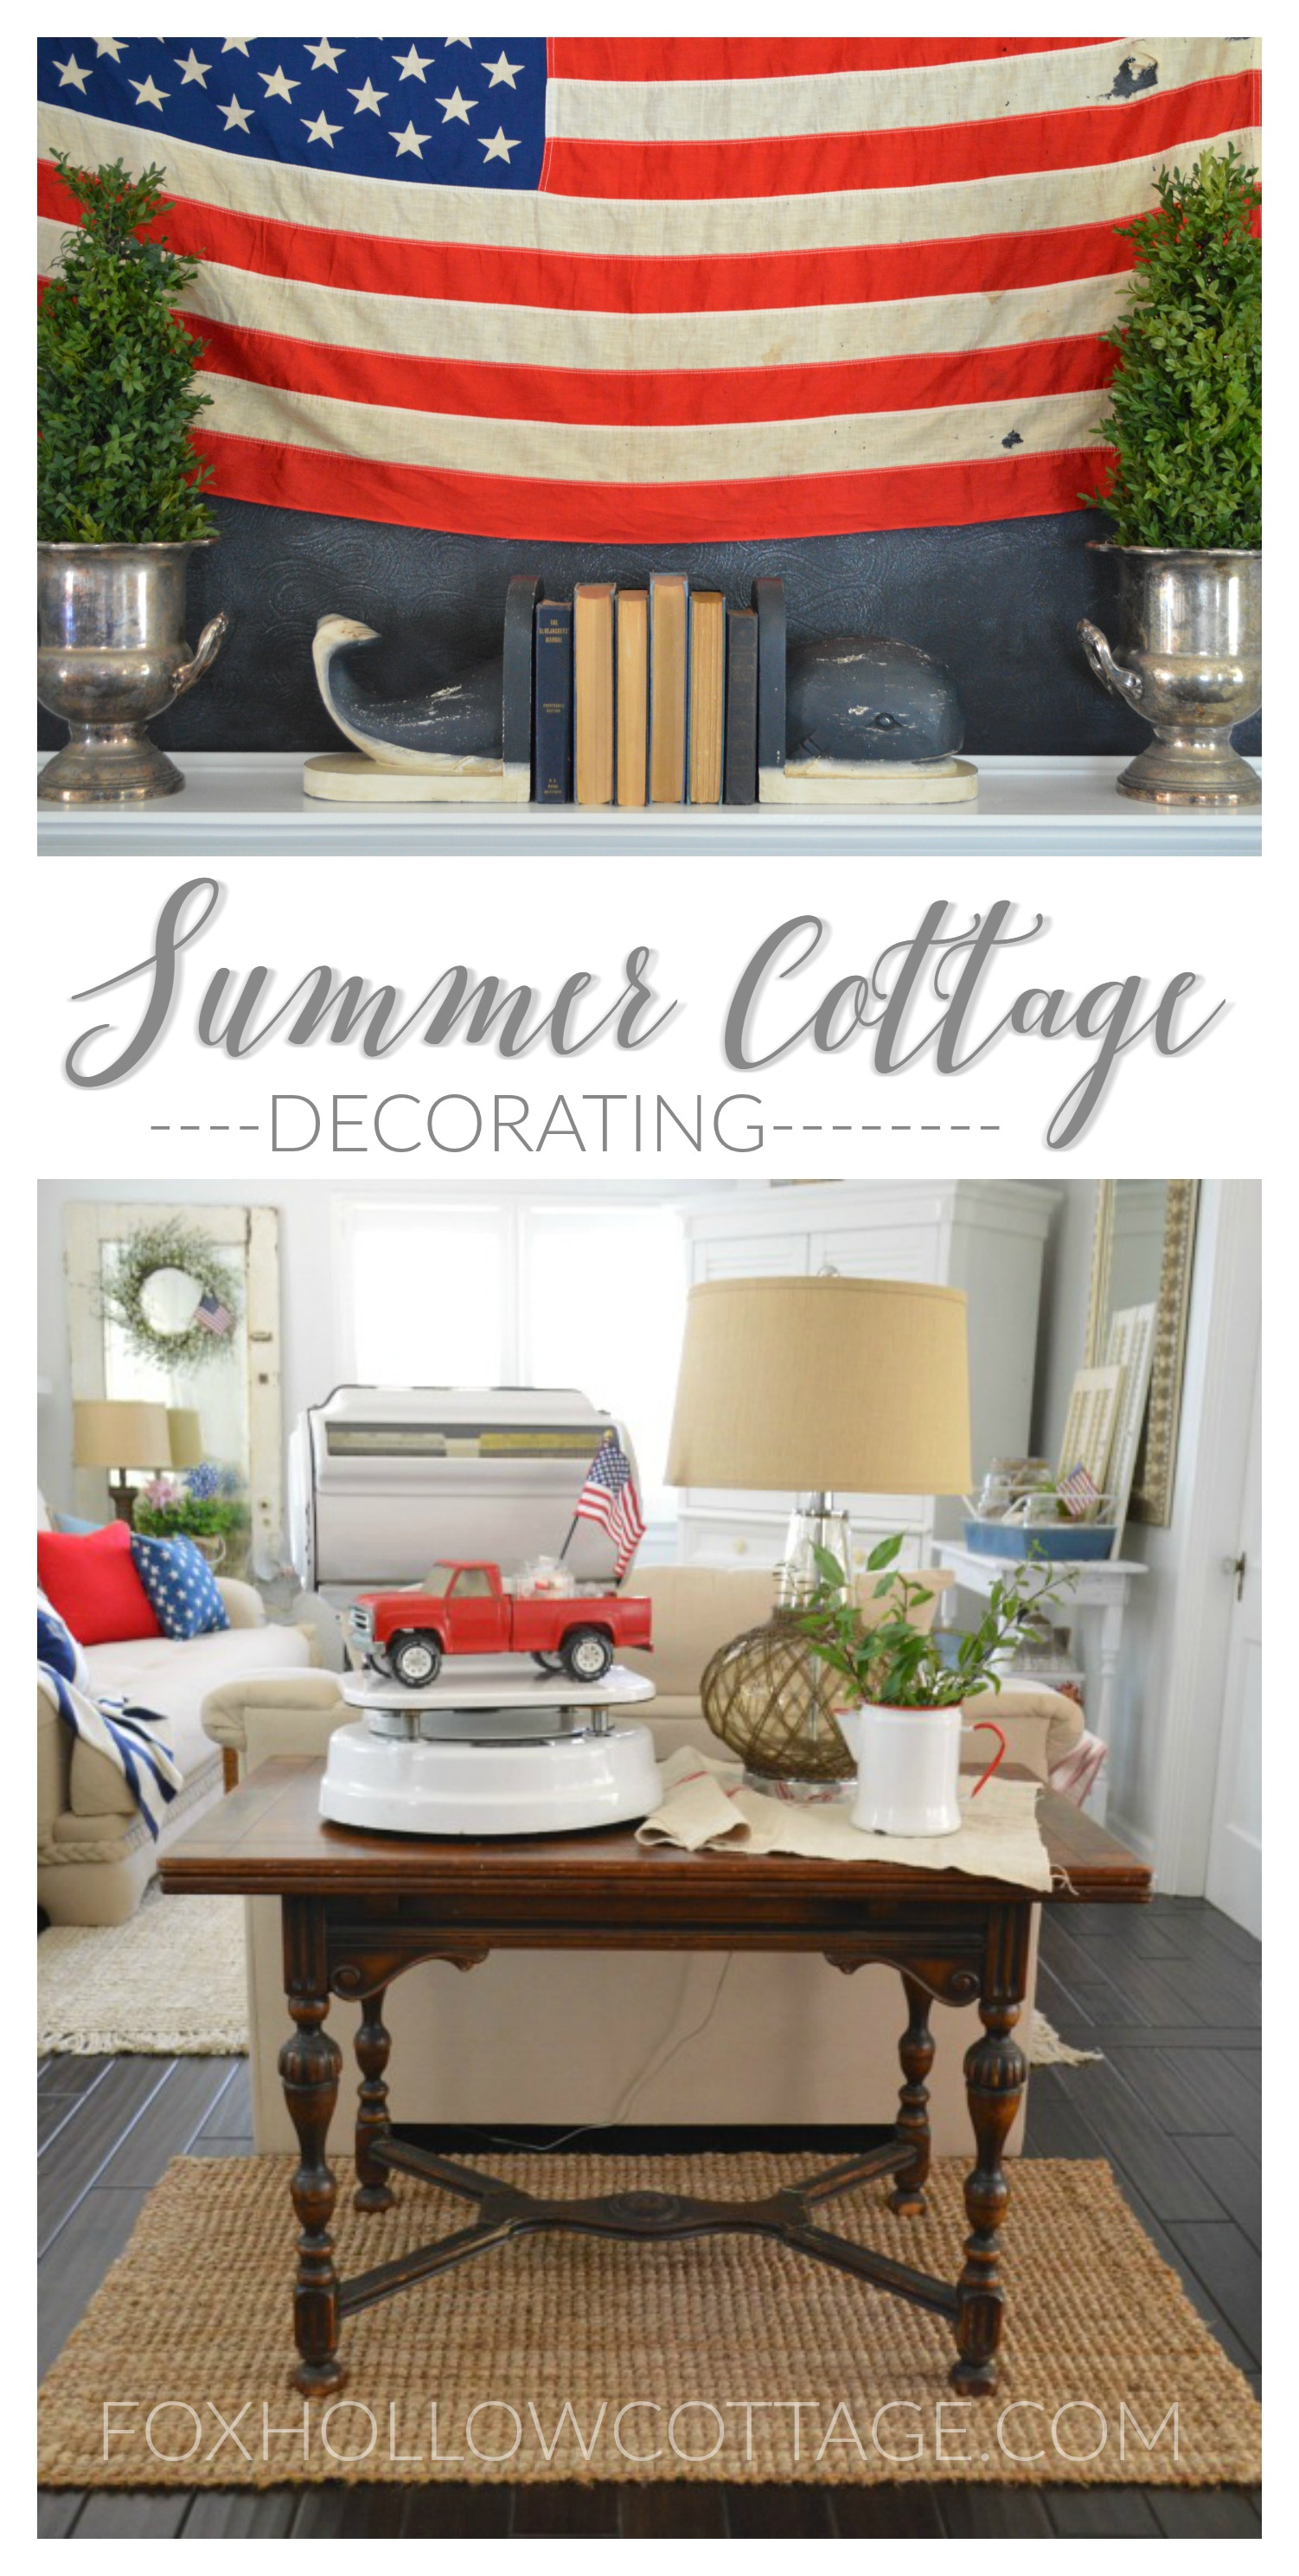 Summer Cottage Decorating at foxhollowcottage.com - Eclectic Nautical Coastal Vintage Style Home Decor